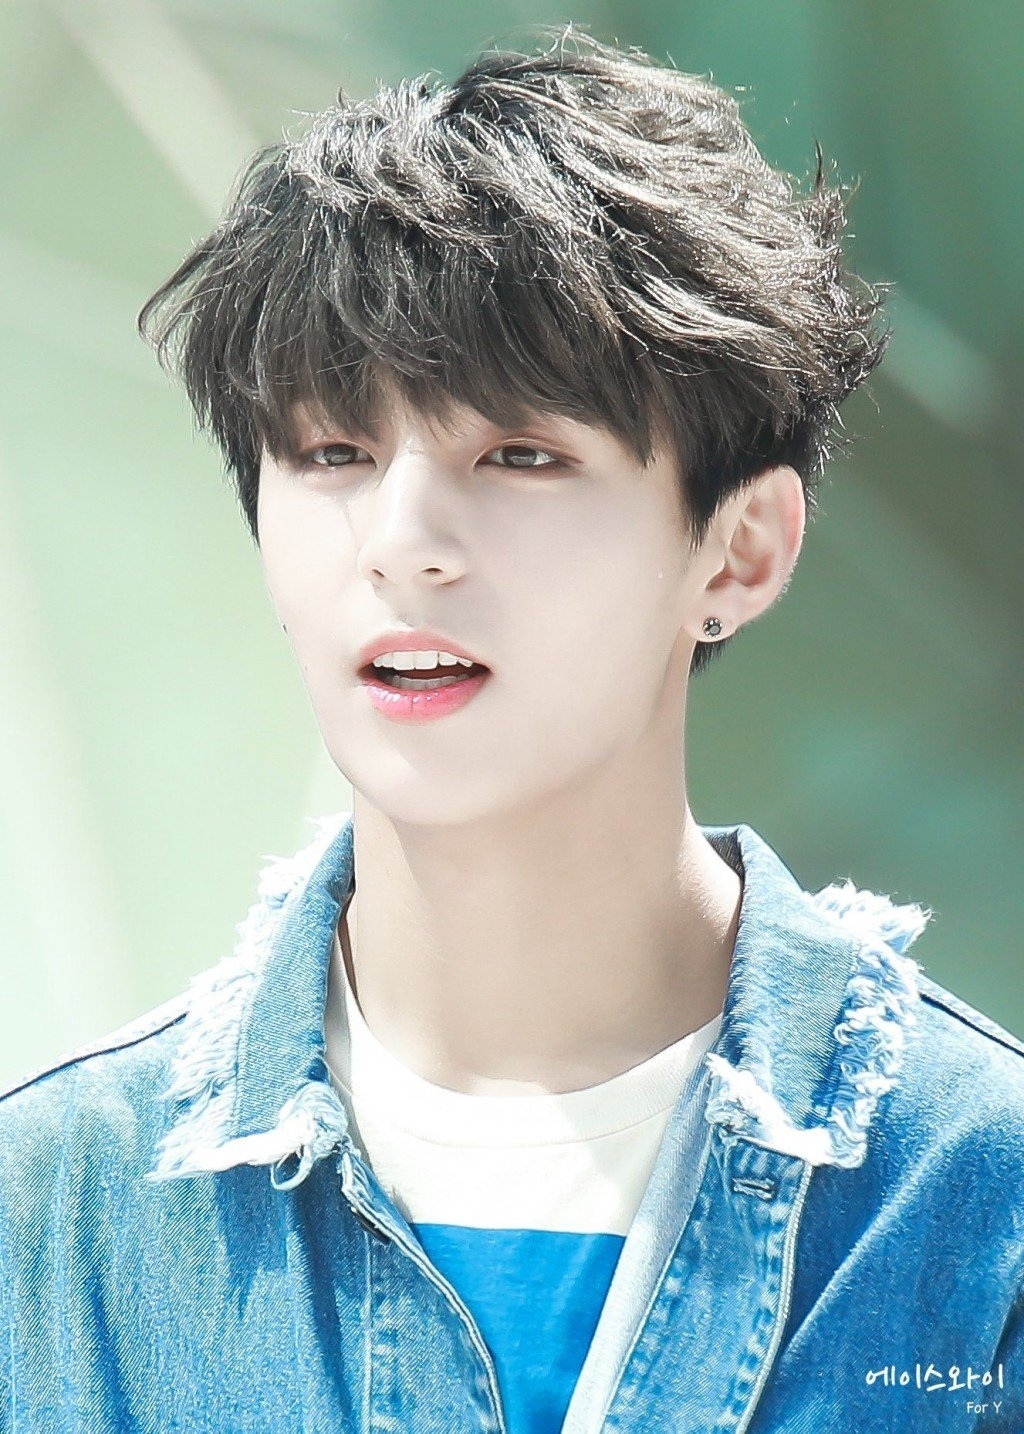 Latest Trendy Asian And Korean Hairstyles For Men 2019 | Bellatory within The greatest Korean Kpop Hairstyles For Guys